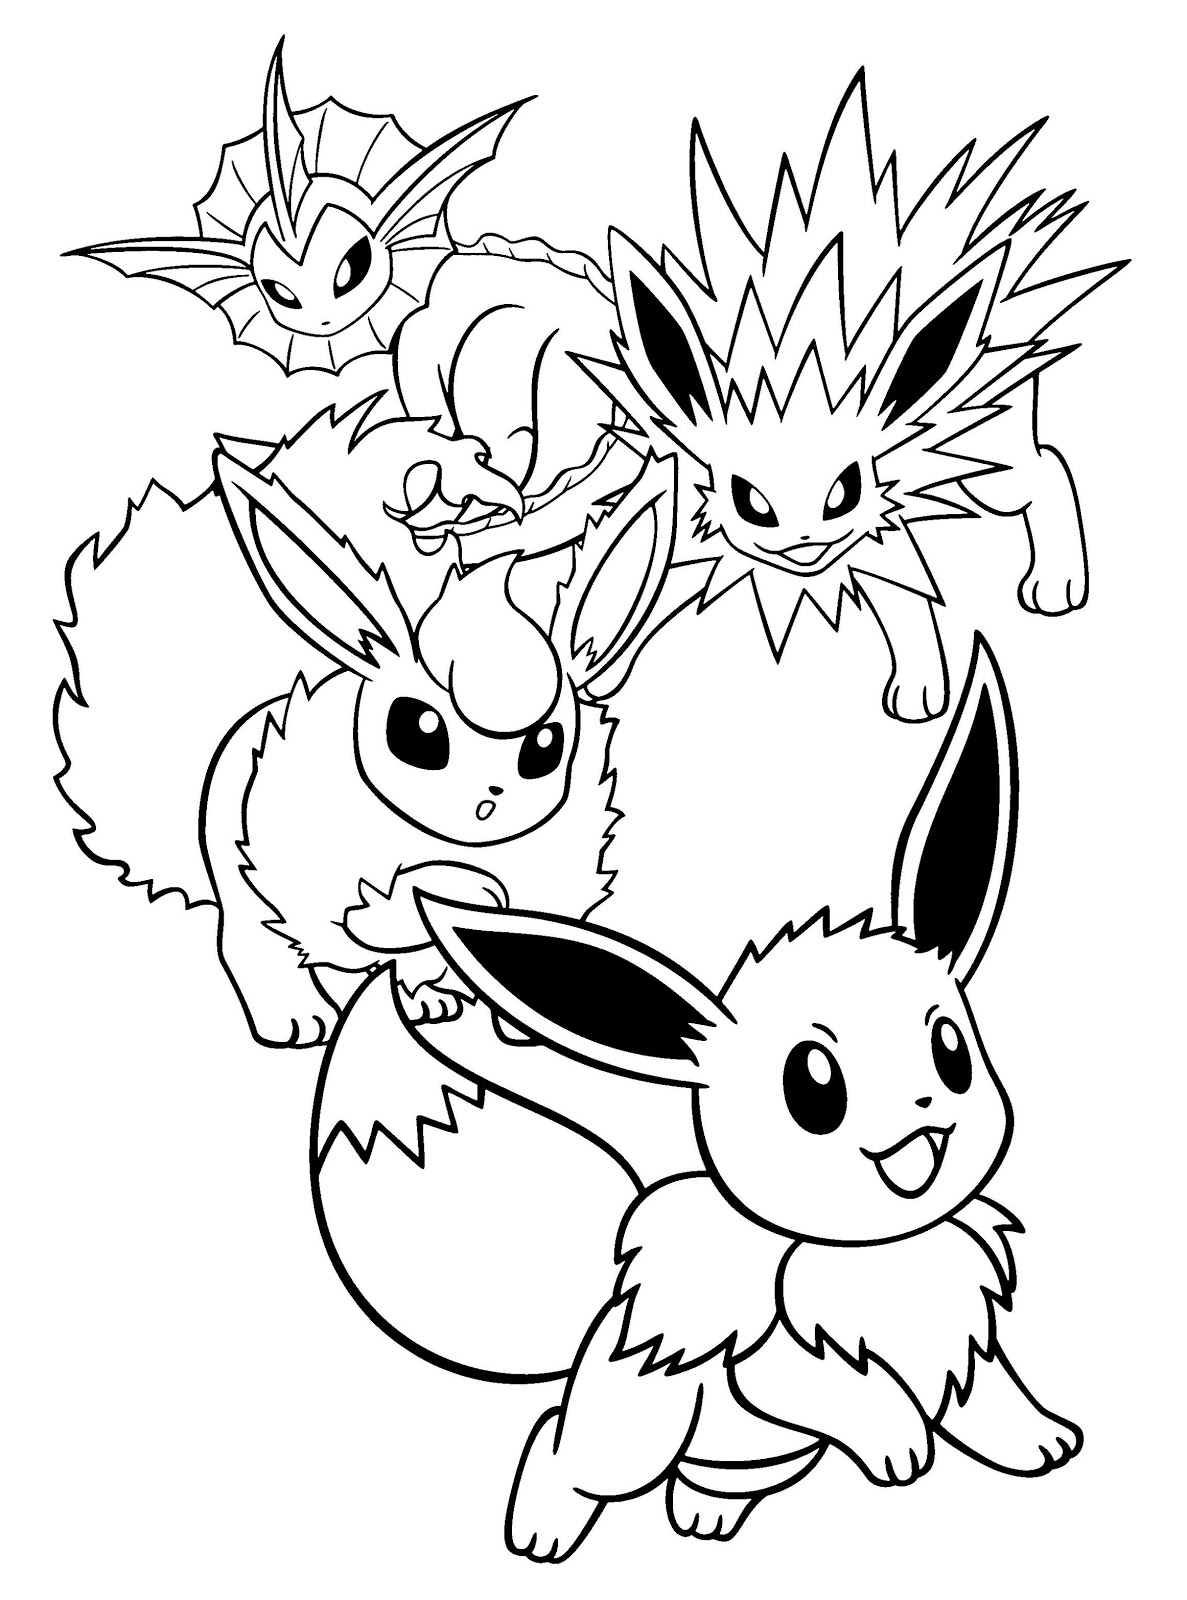 free pokemon printable coloring pages grass type pokemon coloring pages at getcoloringscom pokemon coloring pages printable free